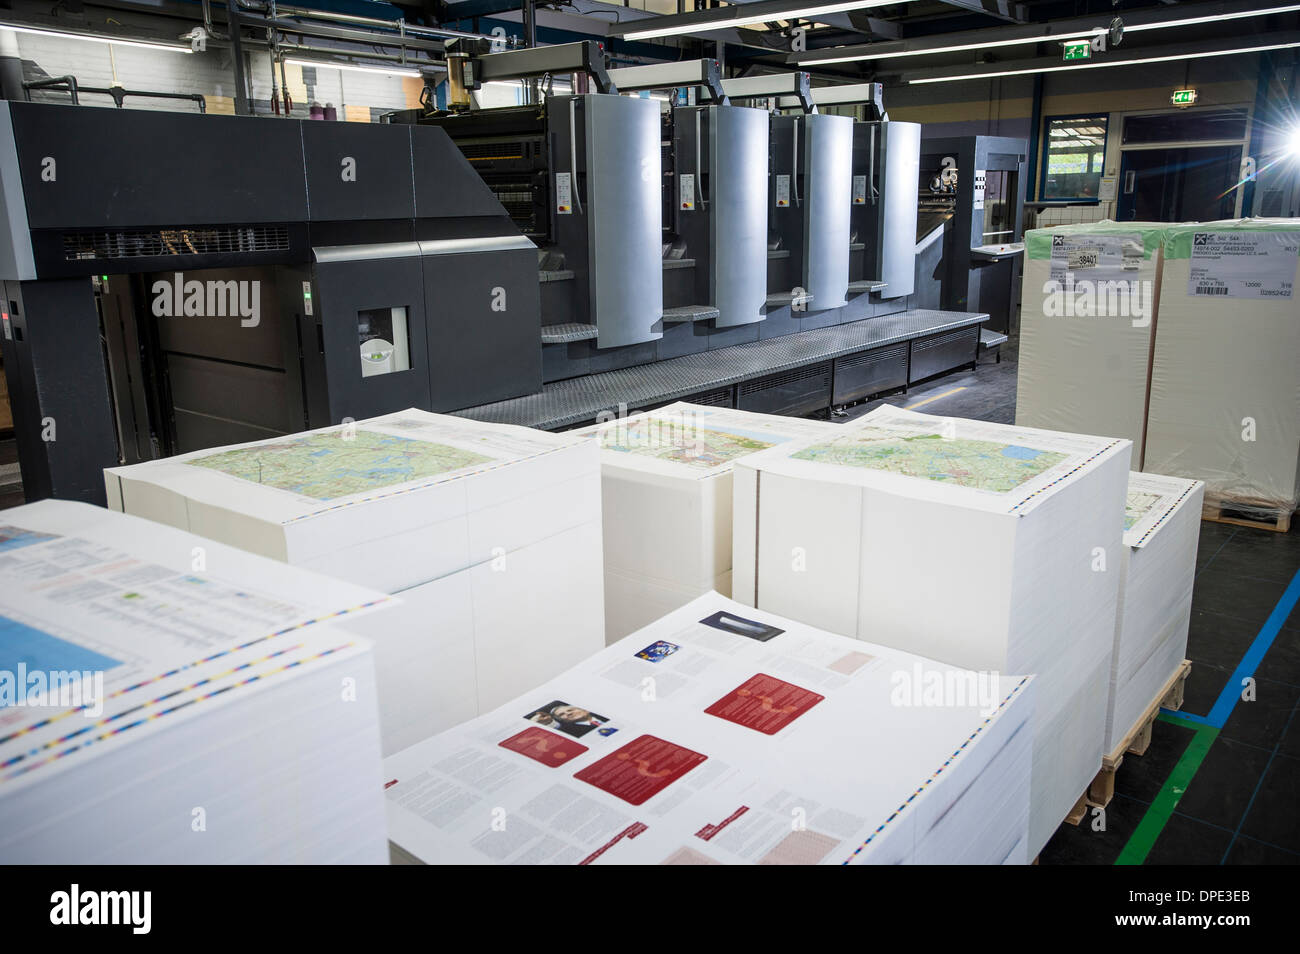 Pallets of finished printed products in paper printing warehouse - Stock Image